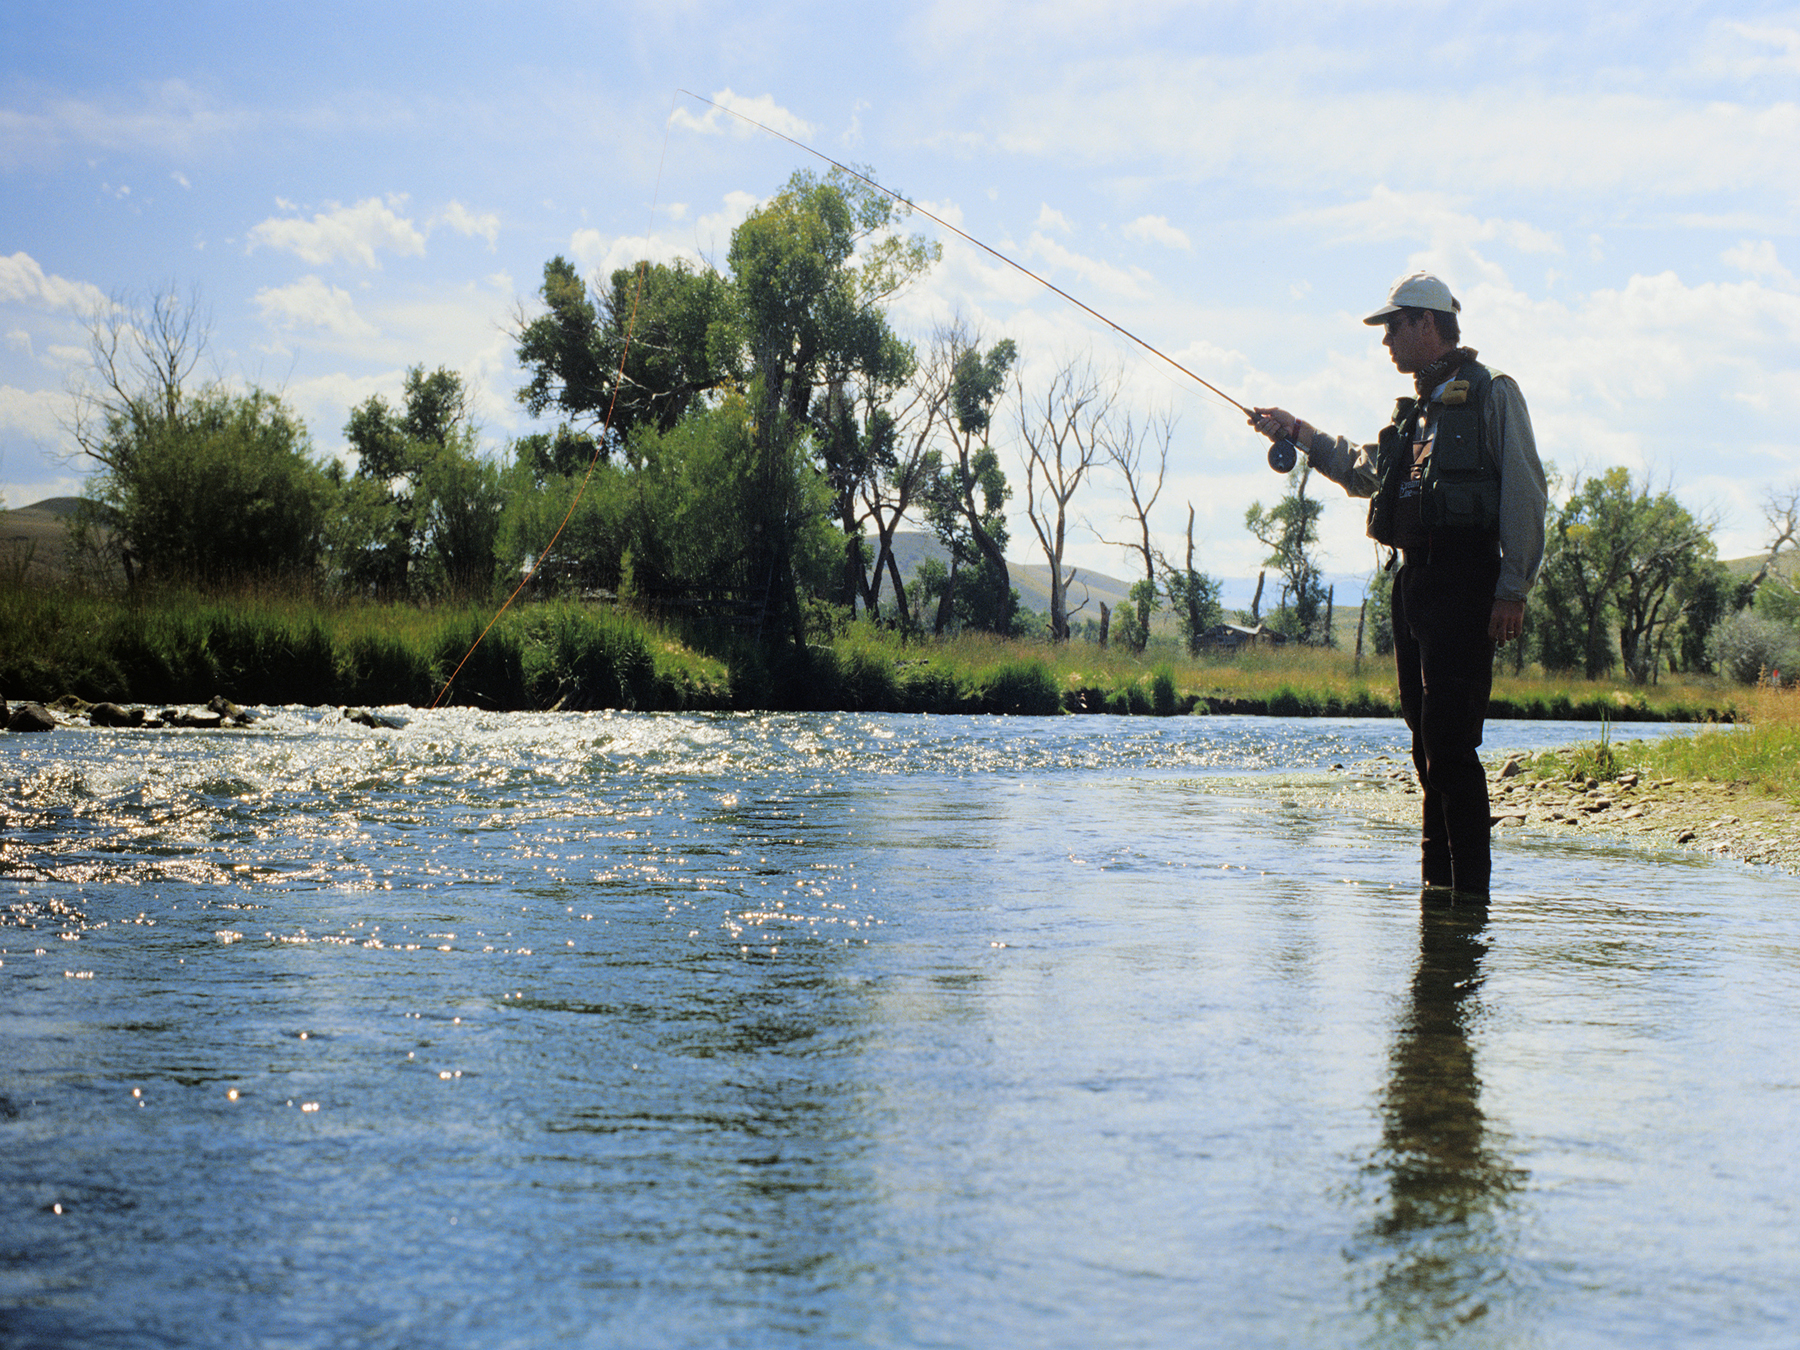 Whether you're after big bass or a trophy trout, Yuba Sutter has some of Northern California's best fishing. Need a guide? Learn the how-to's of finding, casting and catching with a number of different guide services offered throughout the region. H